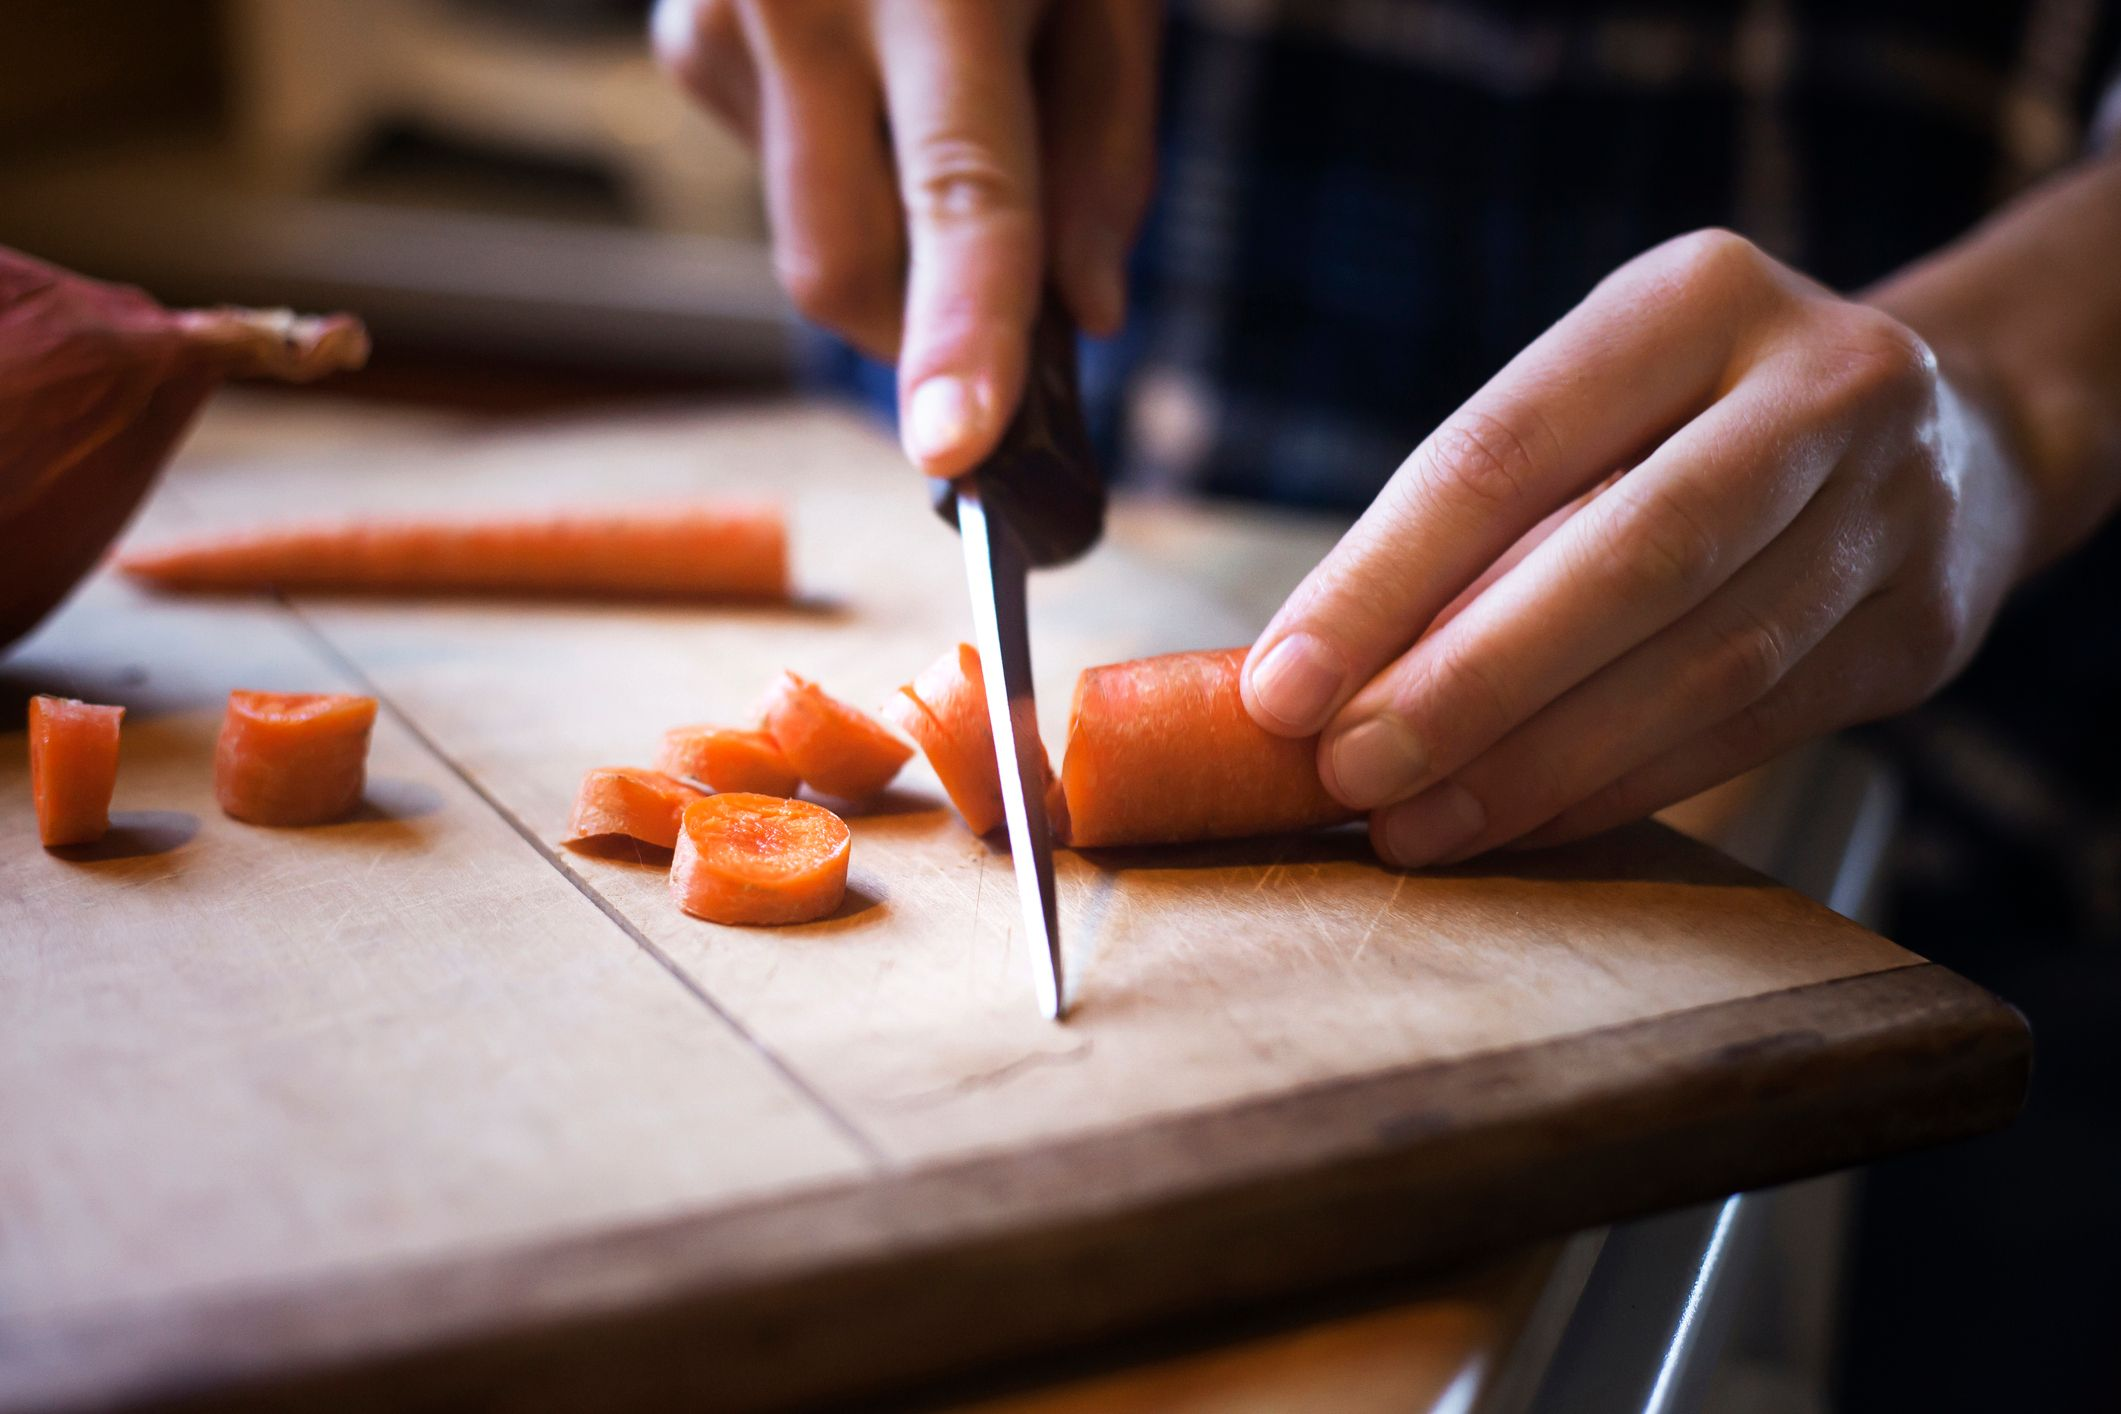 A man slicing carrots. | Source: Getty Images